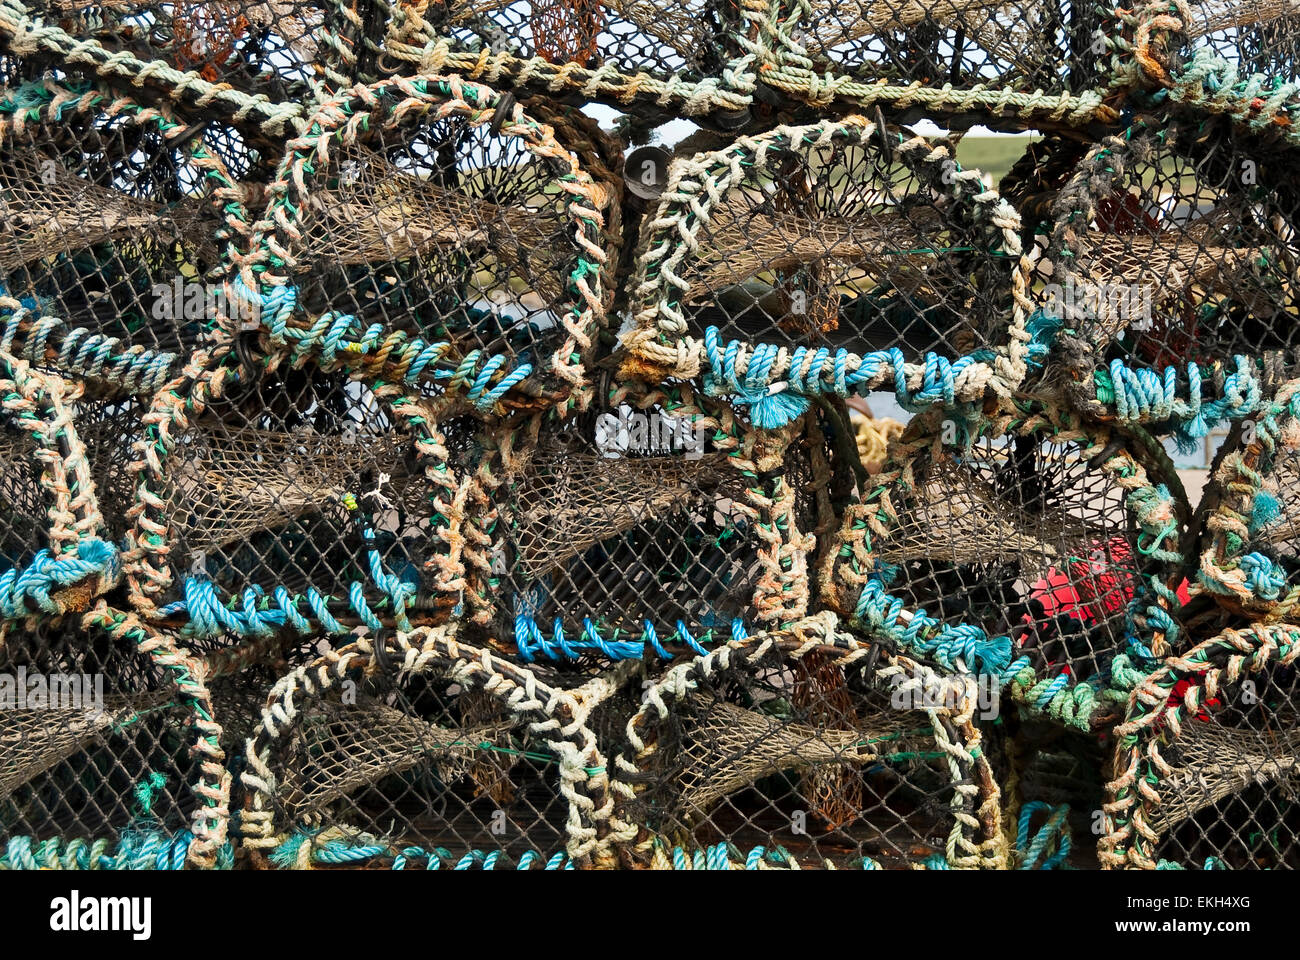 Detail of stacked lobster pots western Ireland - Stock Image